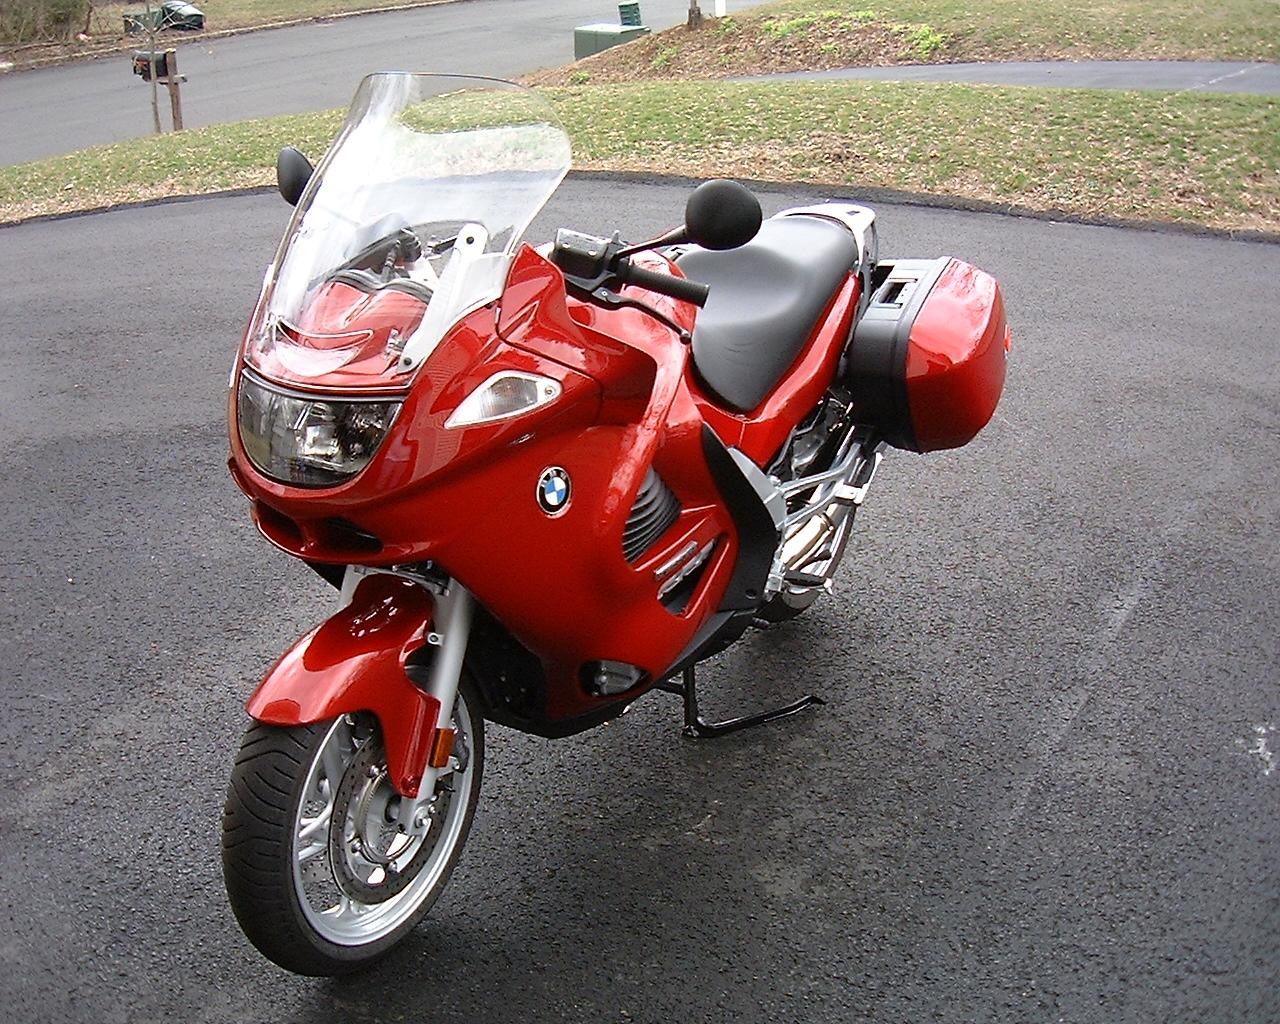 Bmw K1200gt Photos Photogallery With 4 Pics Carsbase Com